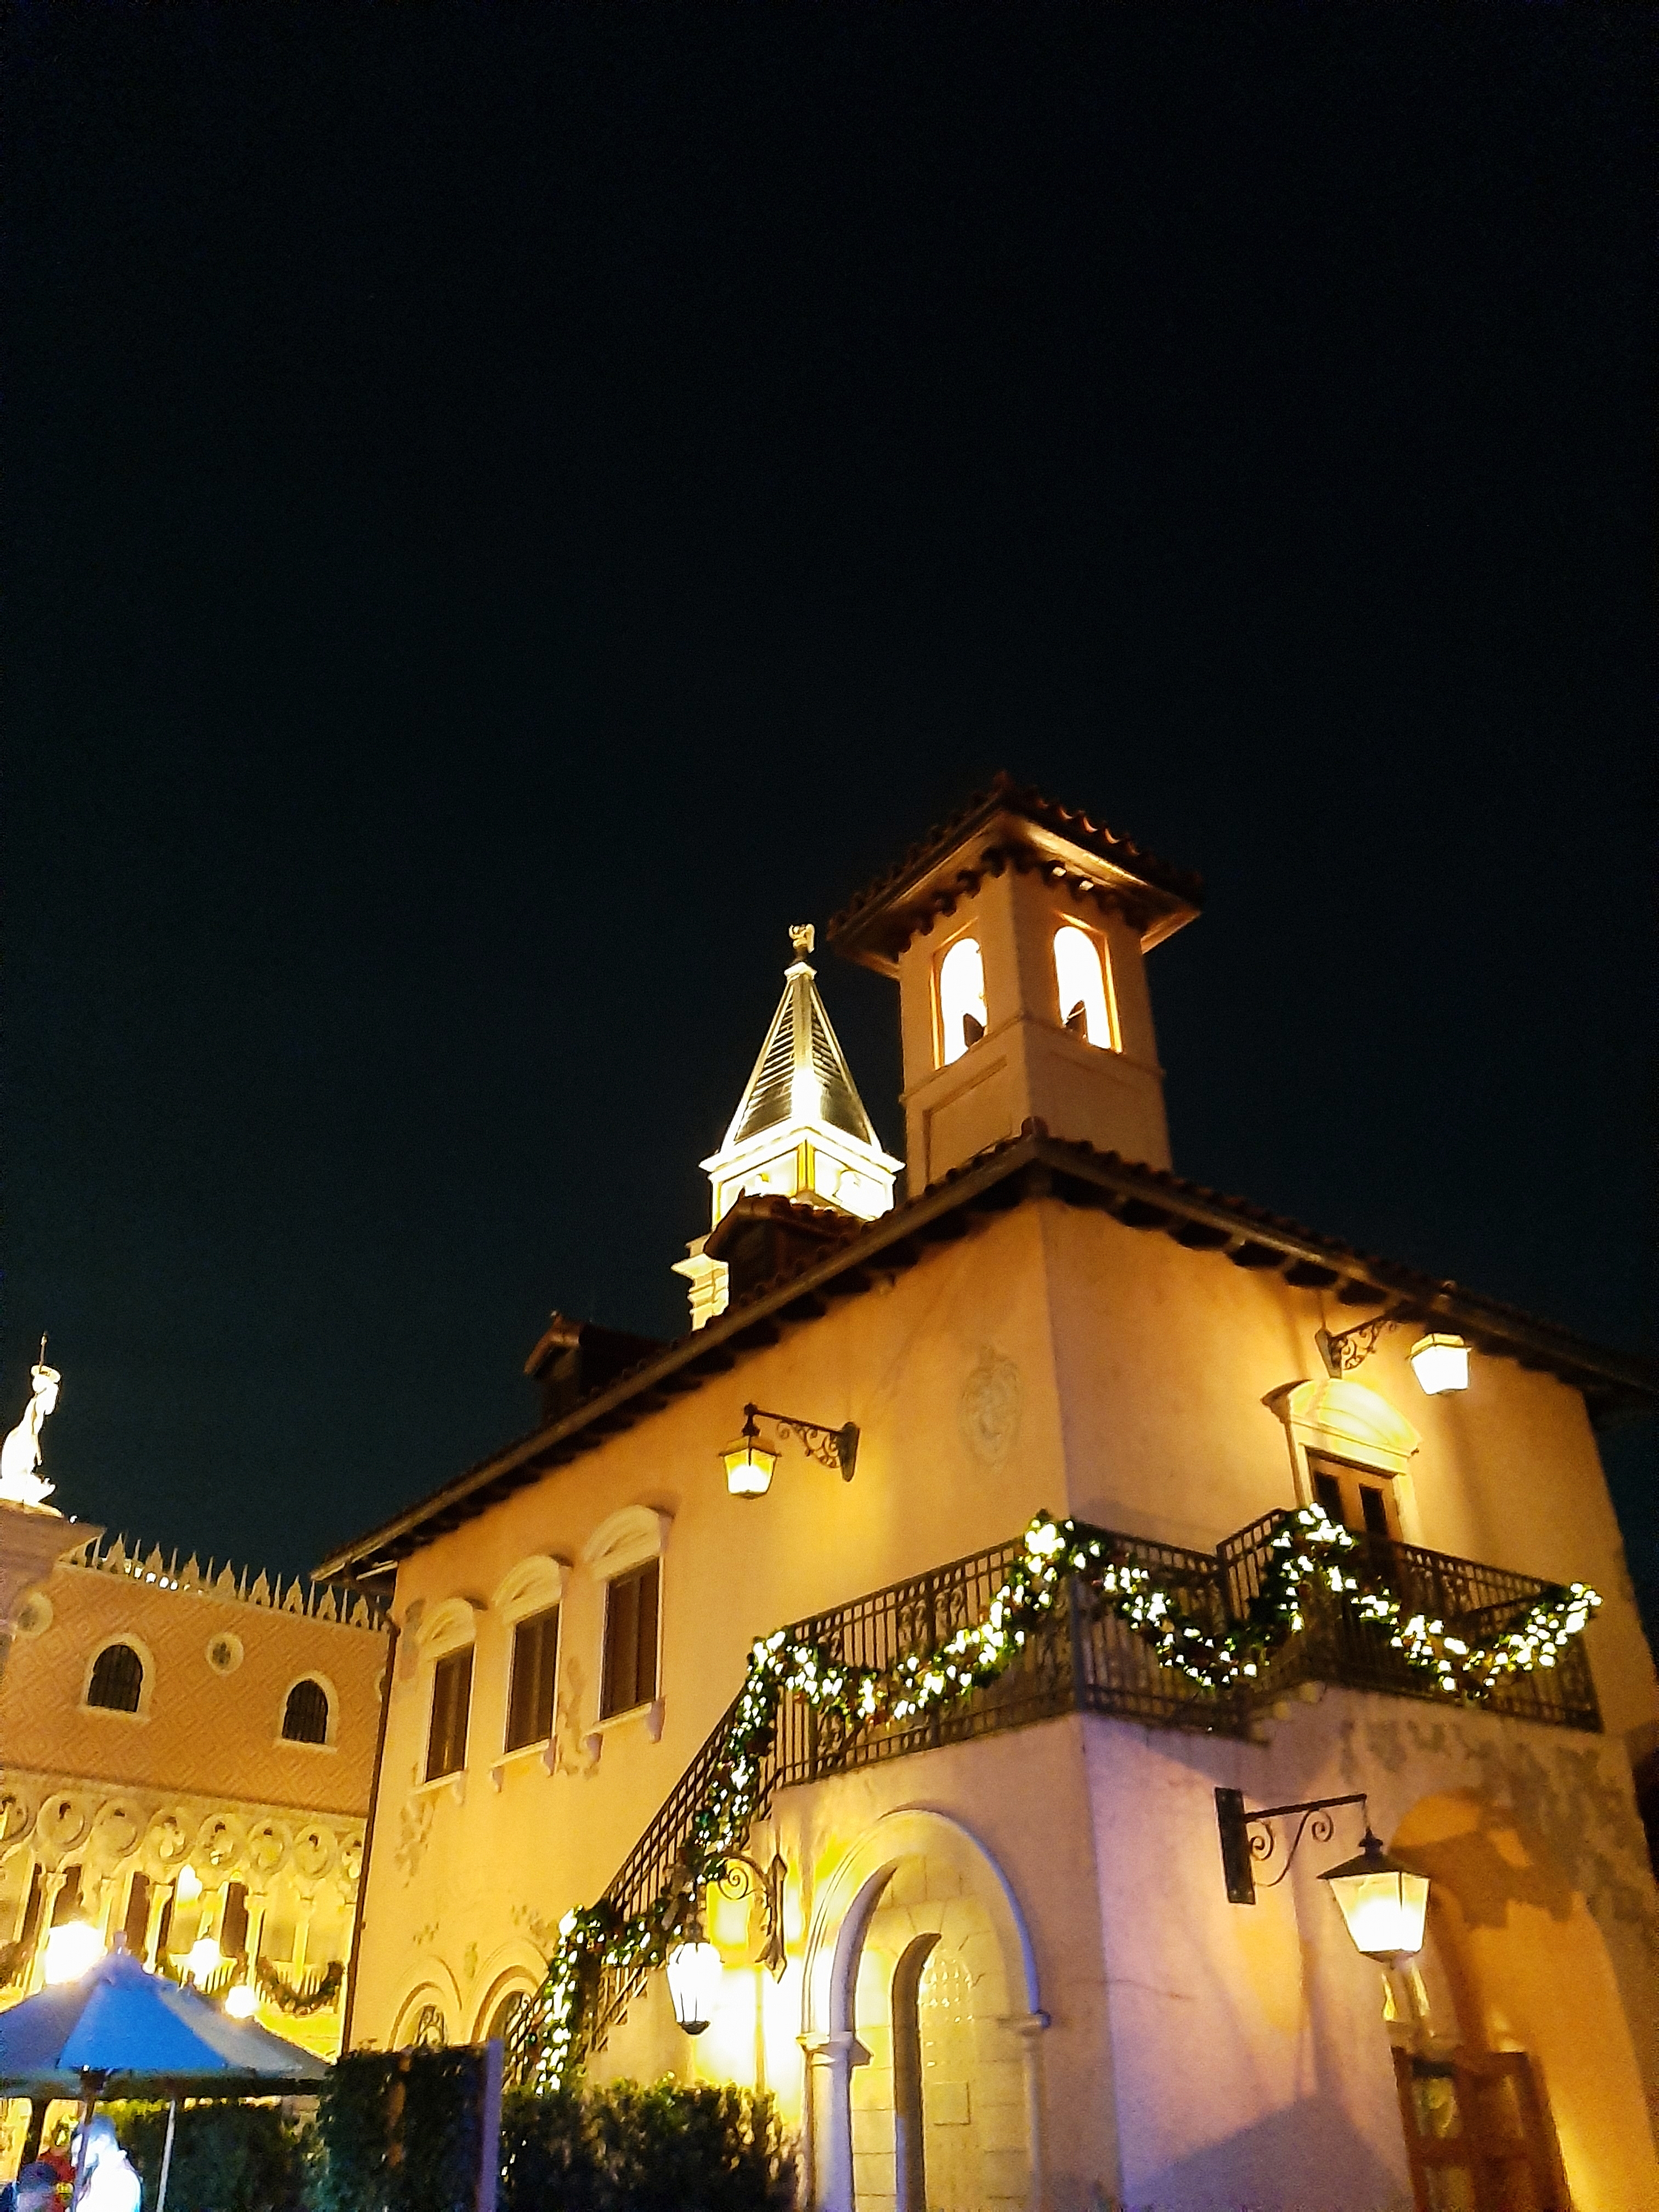 Italy Pavilion at night, with lit up Christmas decorations - EPCOT